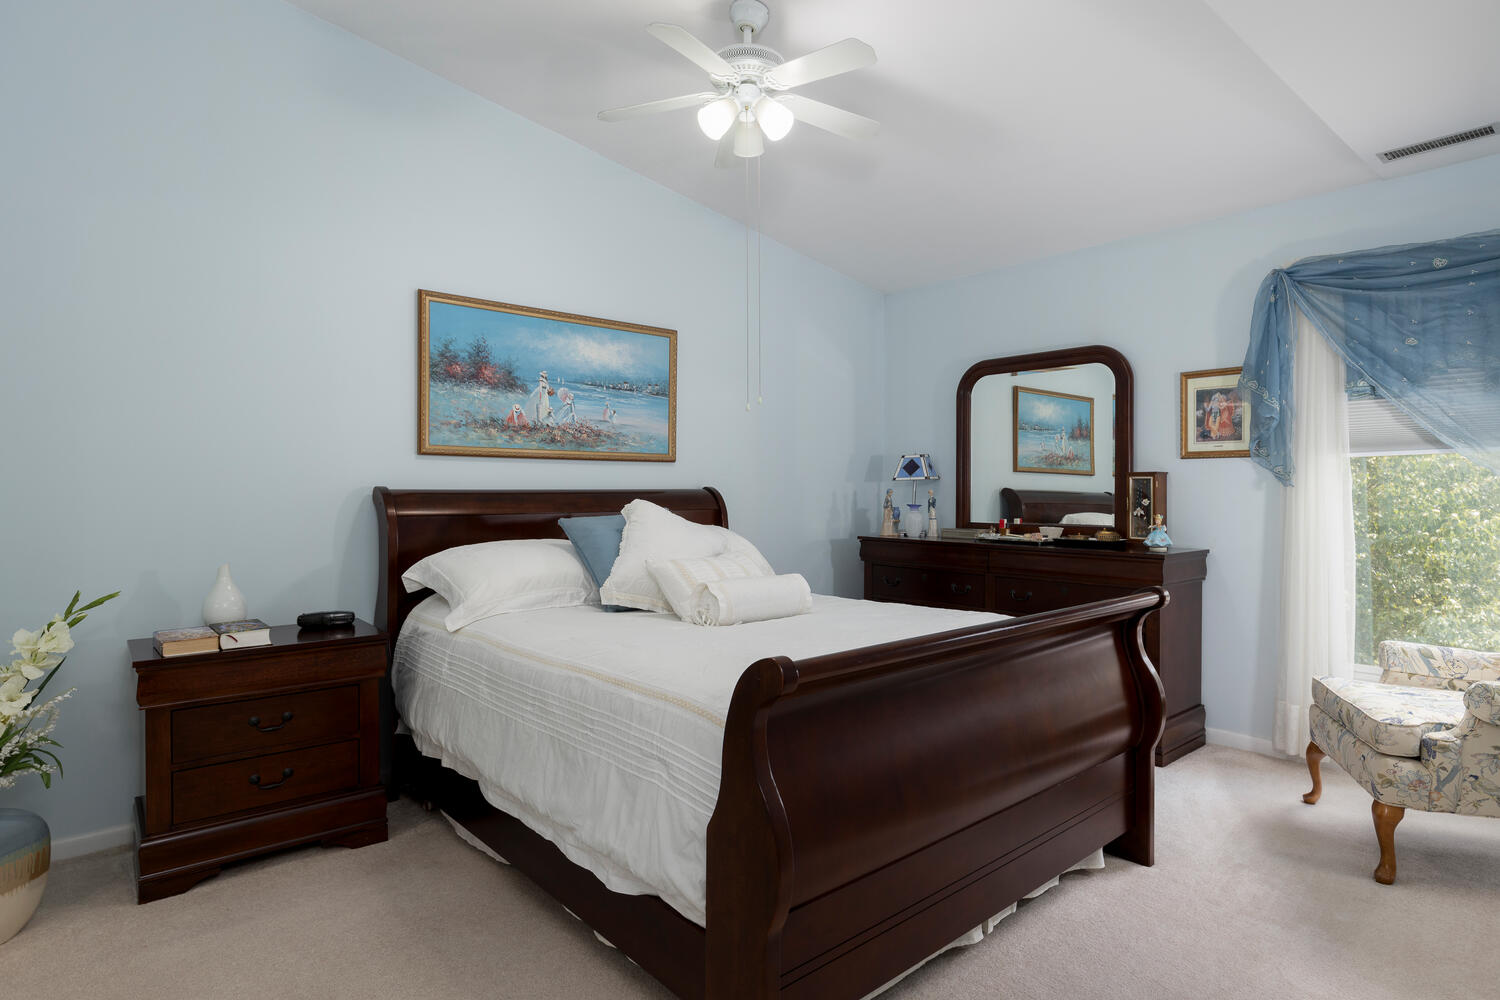 1205 Youngs Rd Unit APT F-large-010-003-Master Bedroom-1500×1000-72dpi